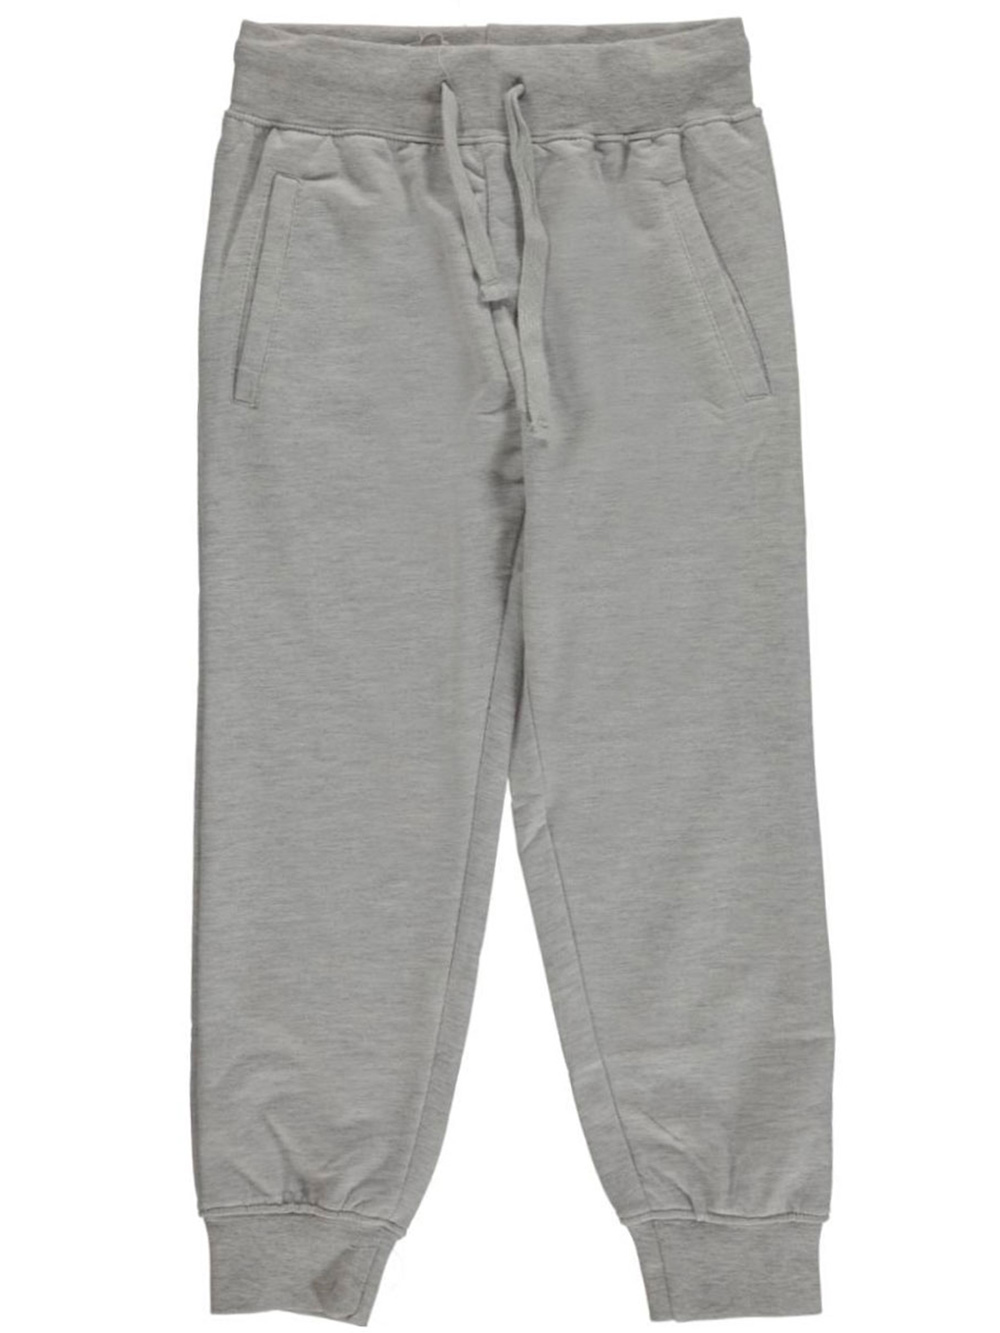 Image of Range Little Boys Classic French Terry Joggers Sizes 4  7  heather gray 4